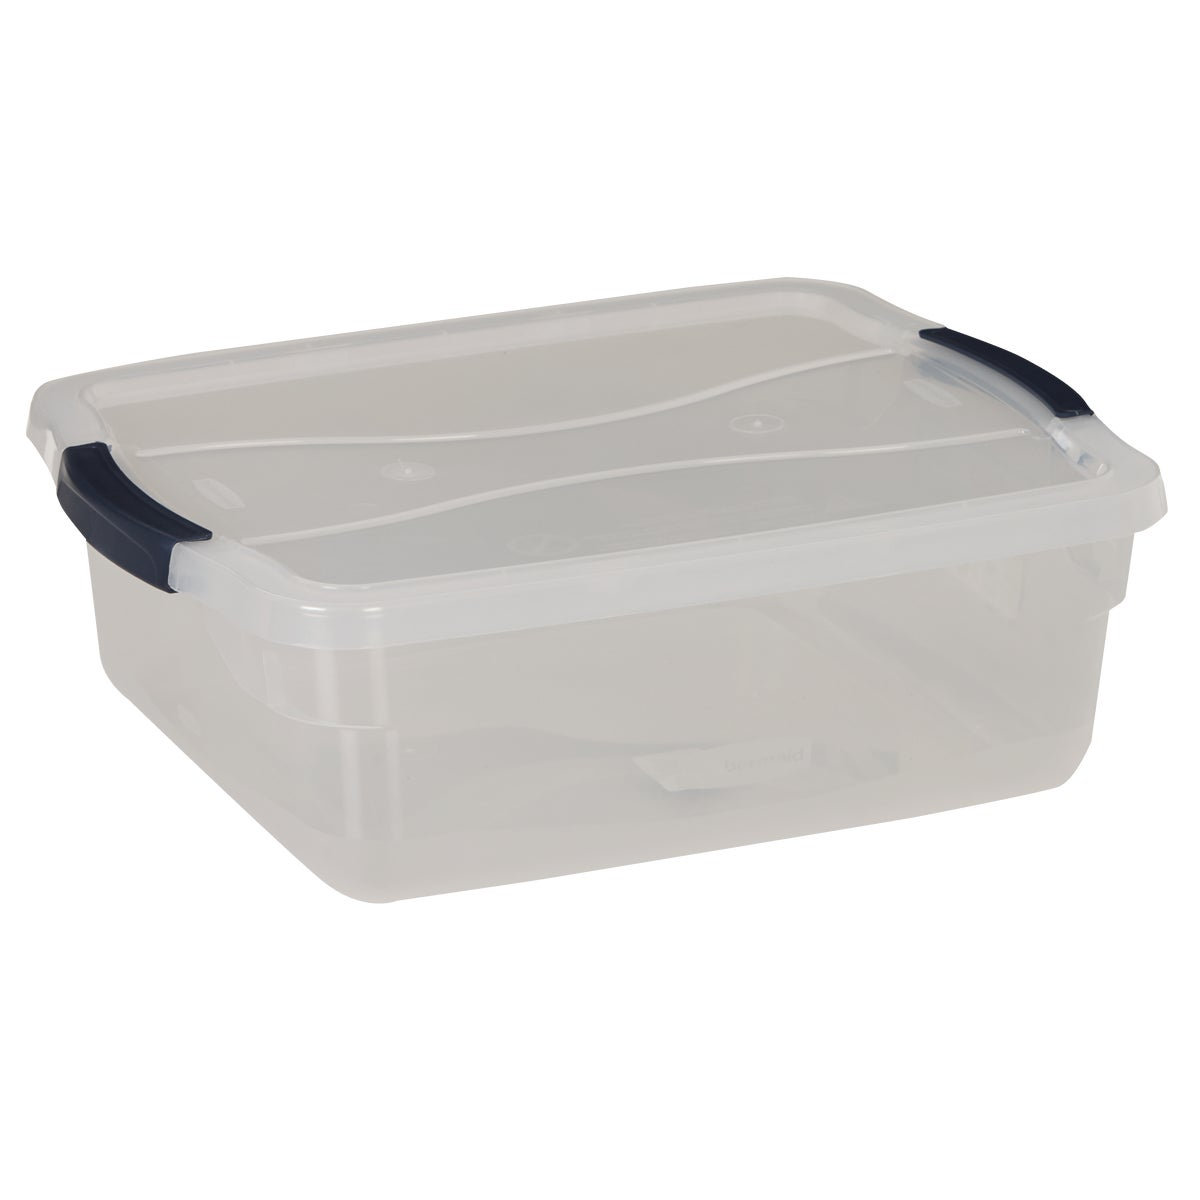 15QT LATCHING STORAGE - 3Q2200CLMCB by Rubbermaid Home